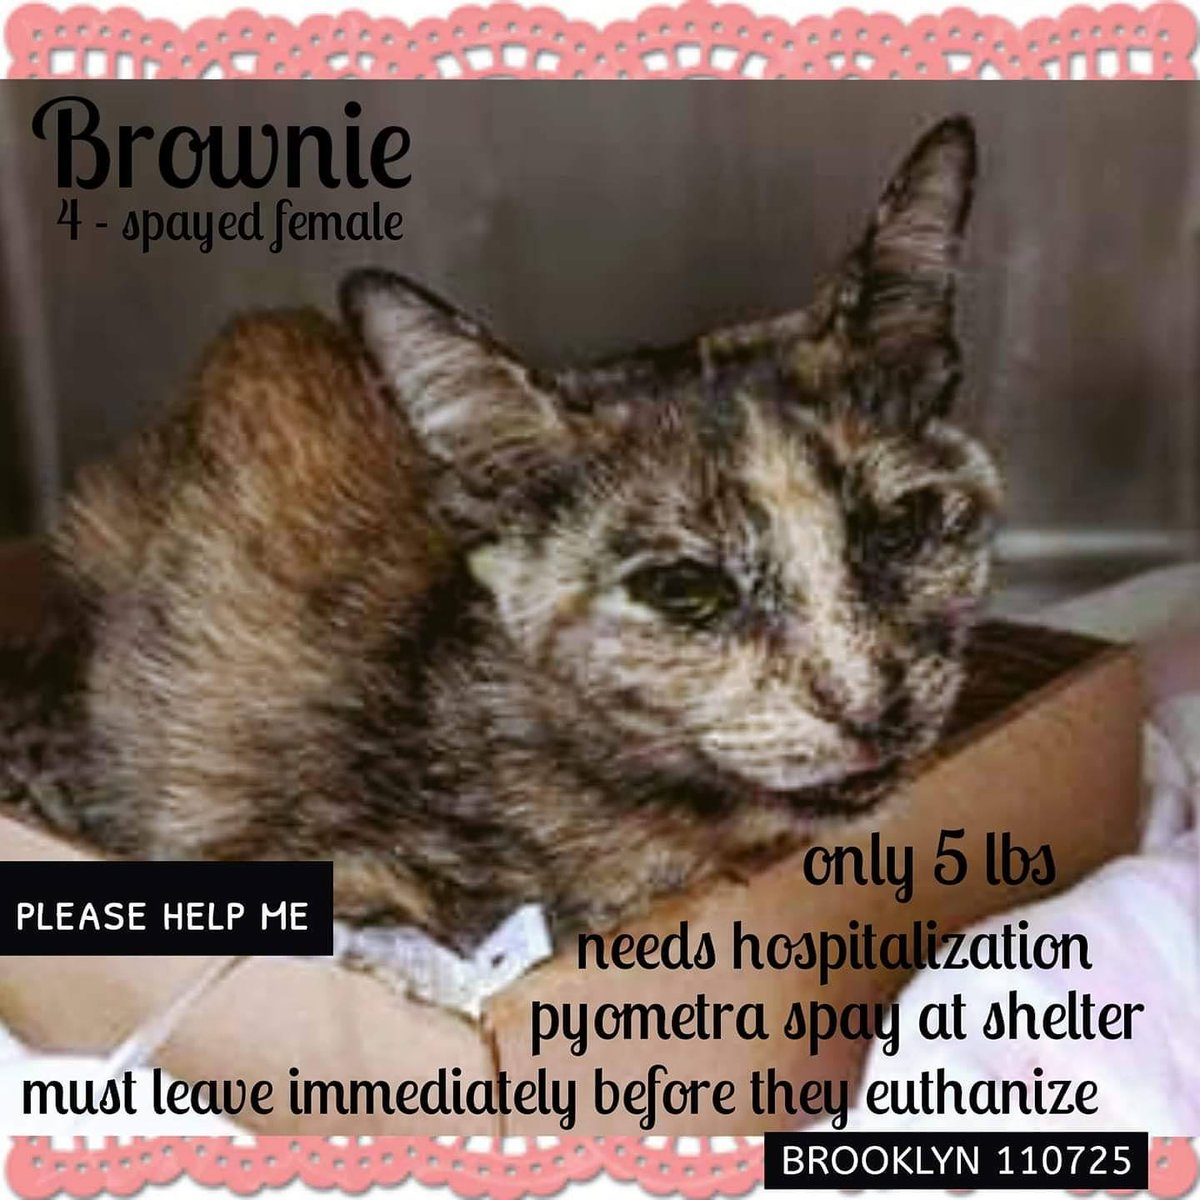 """Poor tortie kitty """"Brownie"""" 110725 in #NewYork"""" at NYC ACC had a pyometra spay & bradycardia, emaciation, anemia, azotemia etc)! (Betrayal is hard)! Can this precious girl be saved? Adopt! Pledge for rescue! VERY URGENT!"""